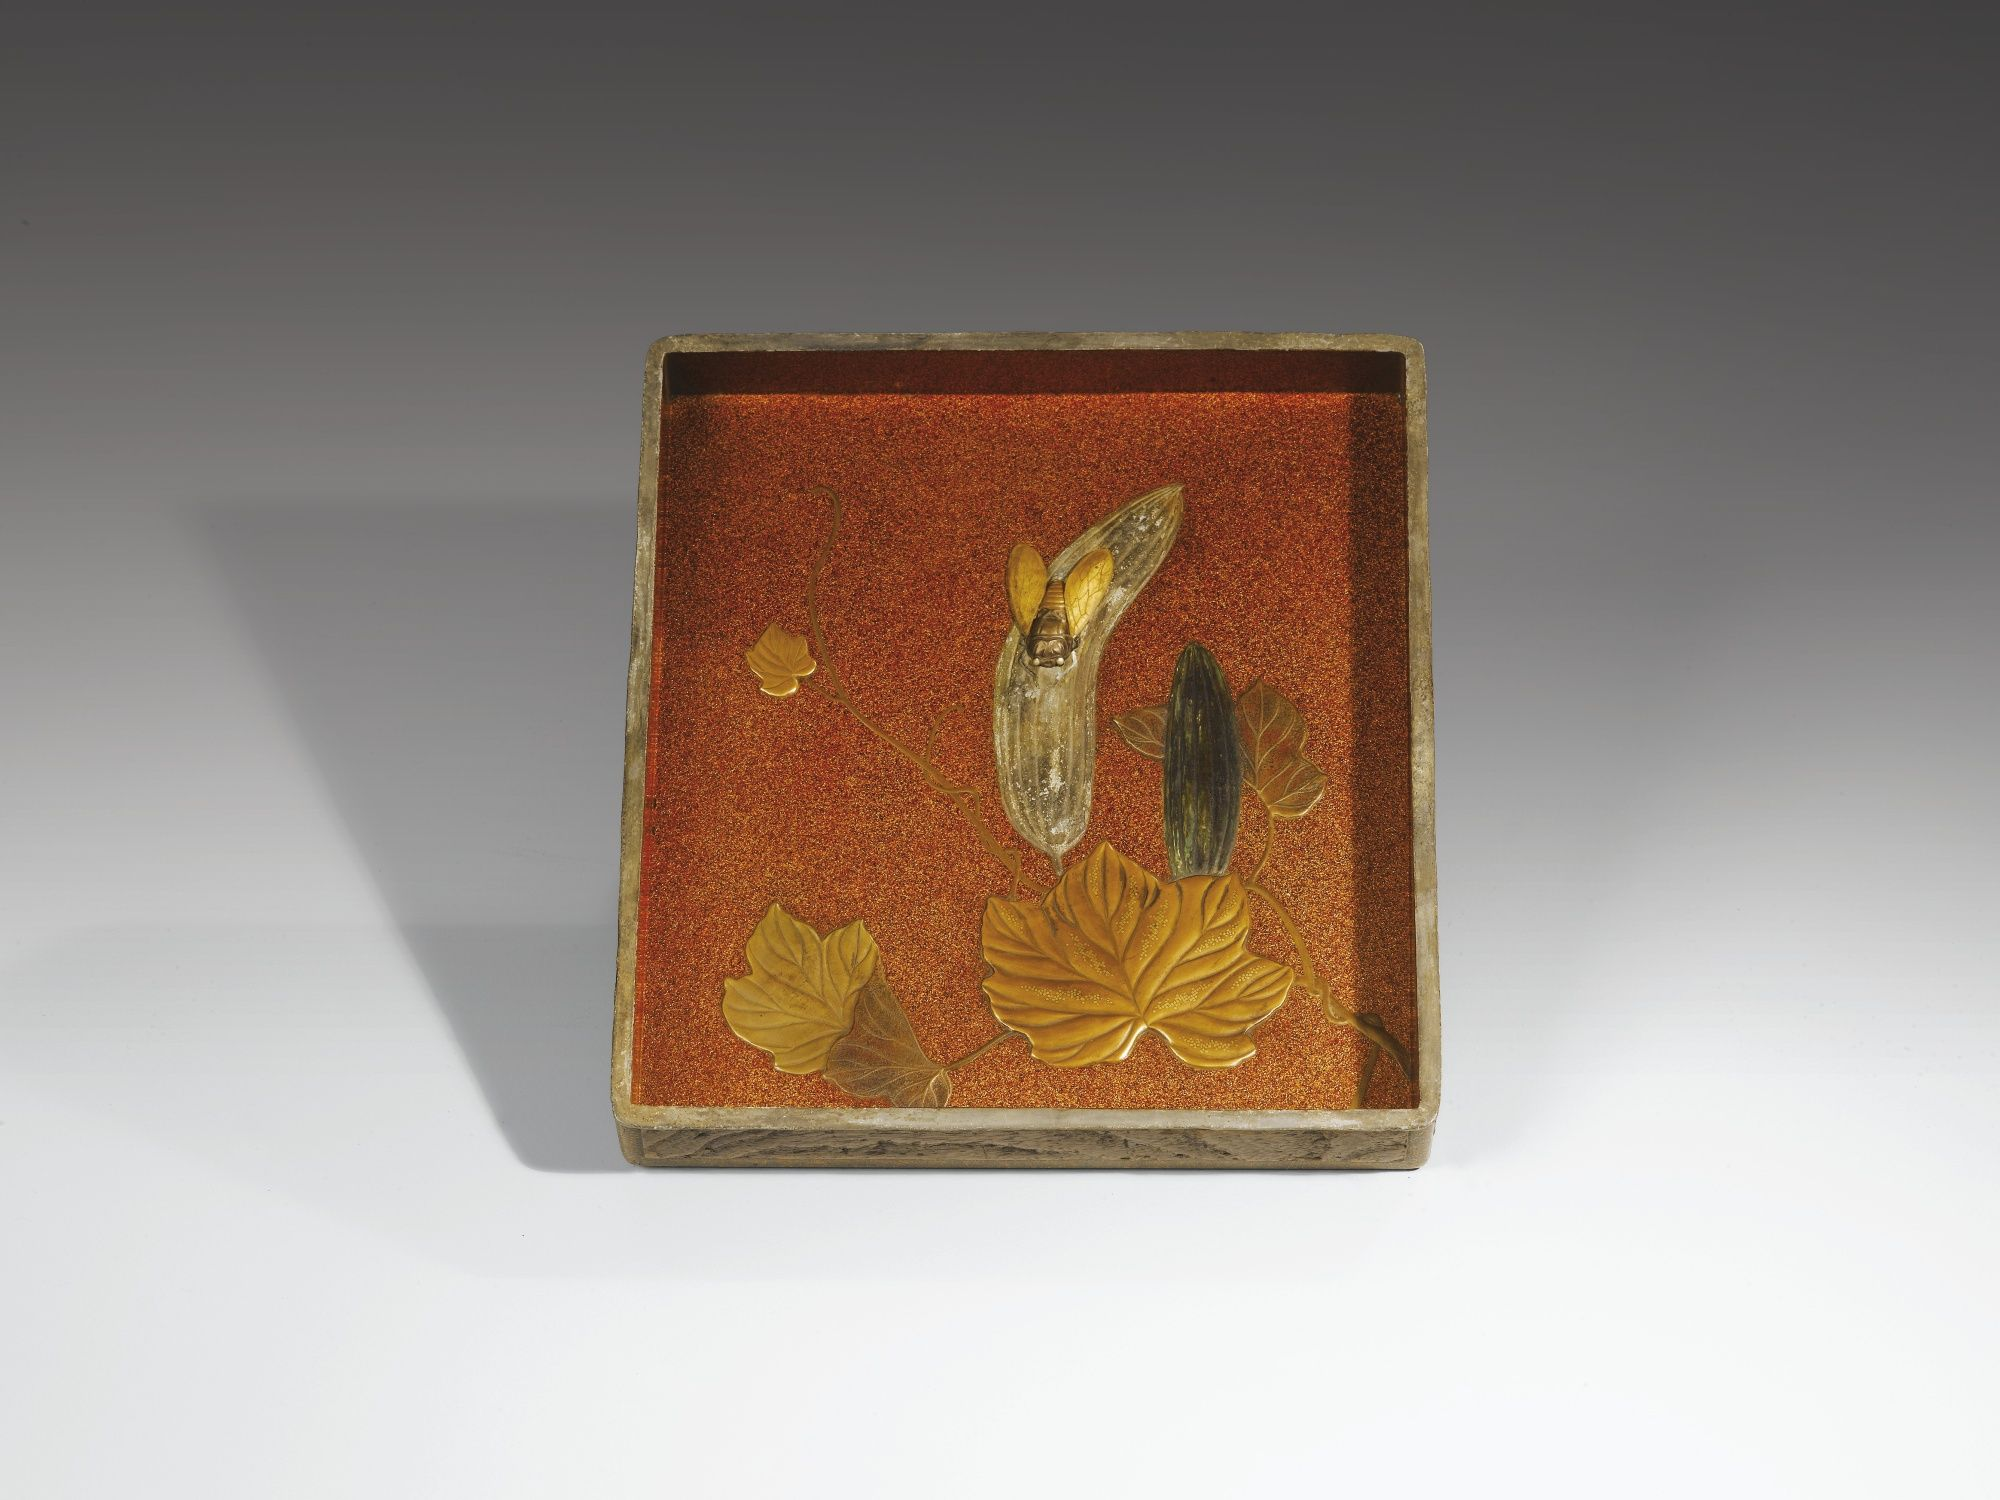 A LACQUER WRITING BOX AND COVER (SUZURIBAKO) SIGNED KANO KJUHAKU, JAPAN, EDO PERIOD, 18TH CENTURY